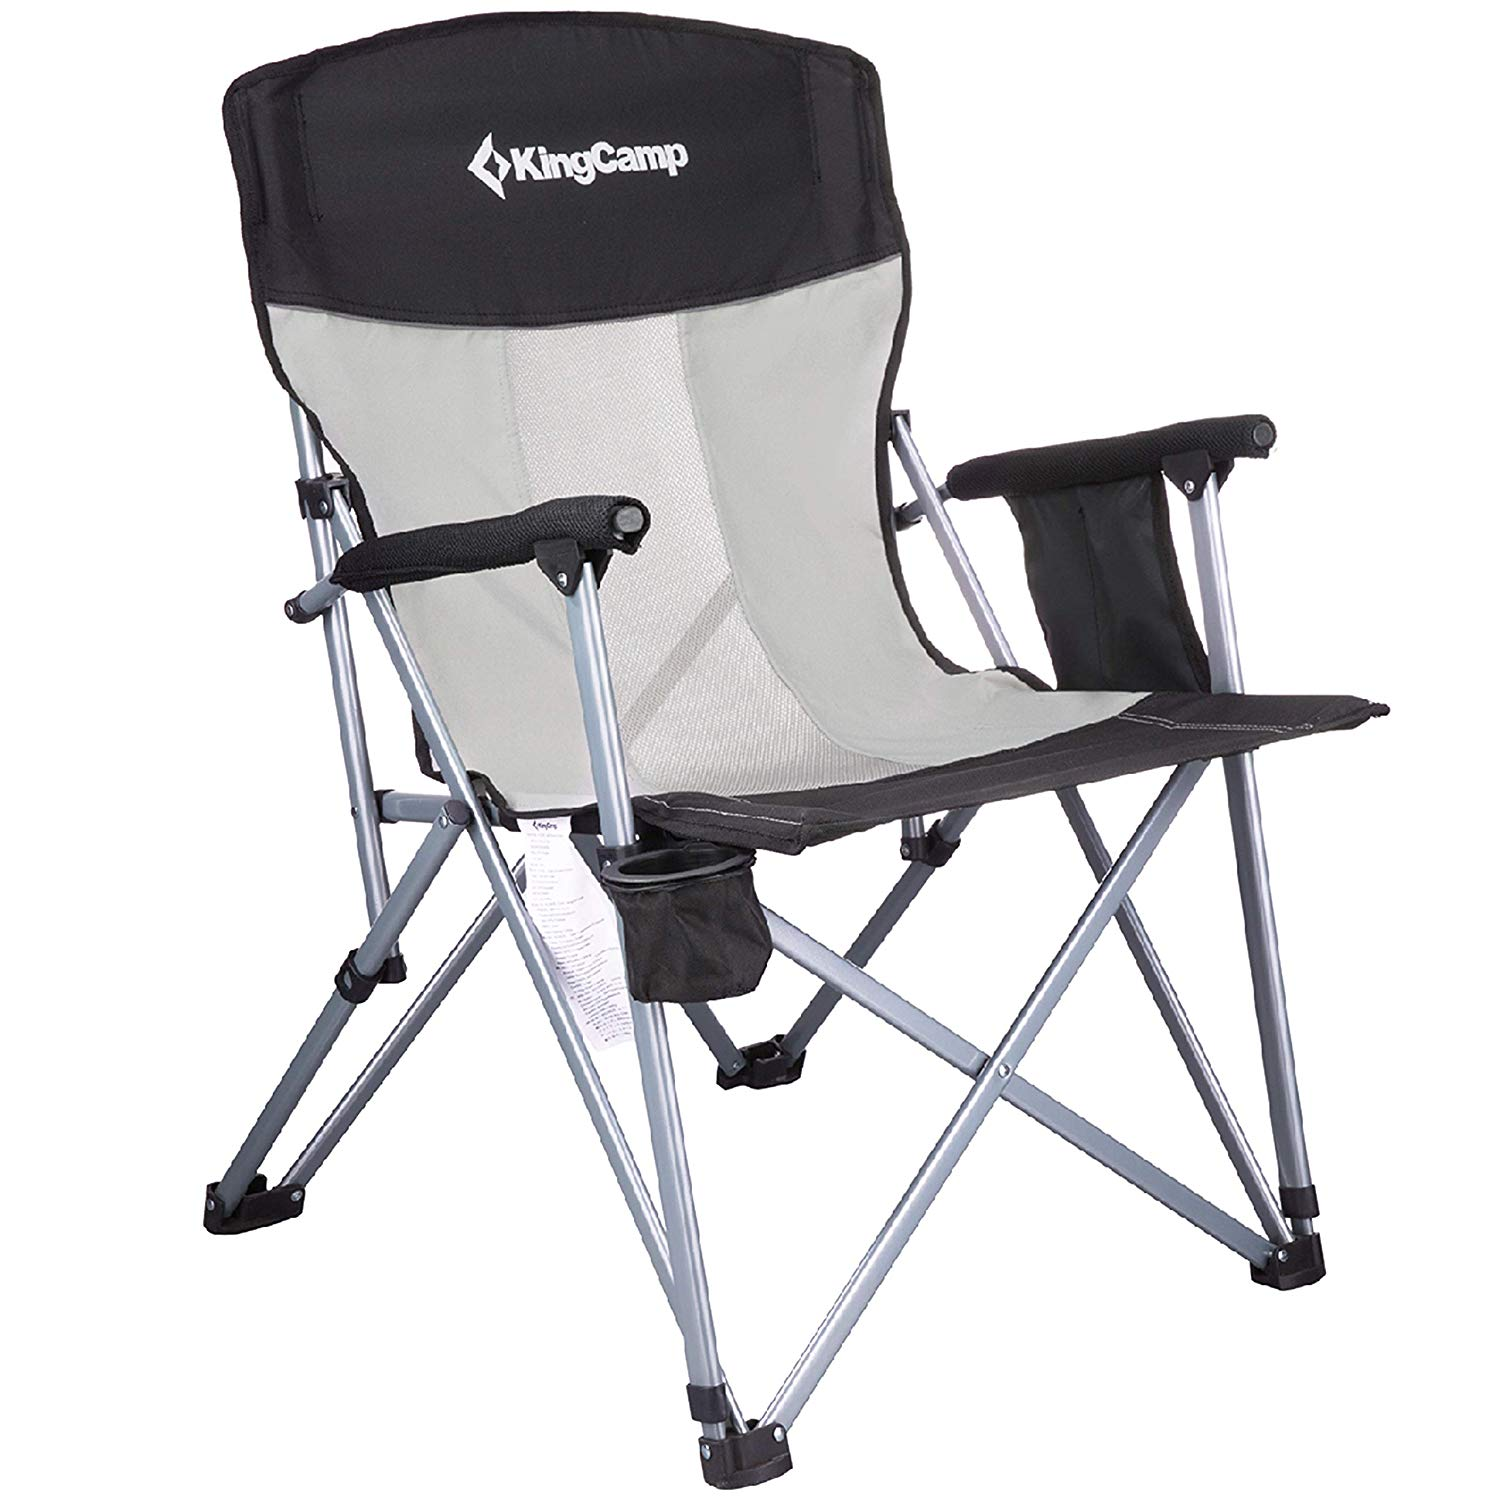 Cool Top 10 Best Camping Chair For Bad Back 2019 Reviews Andrewgaddart Wooden Chair Designs For Living Room Andrewgaddartcom